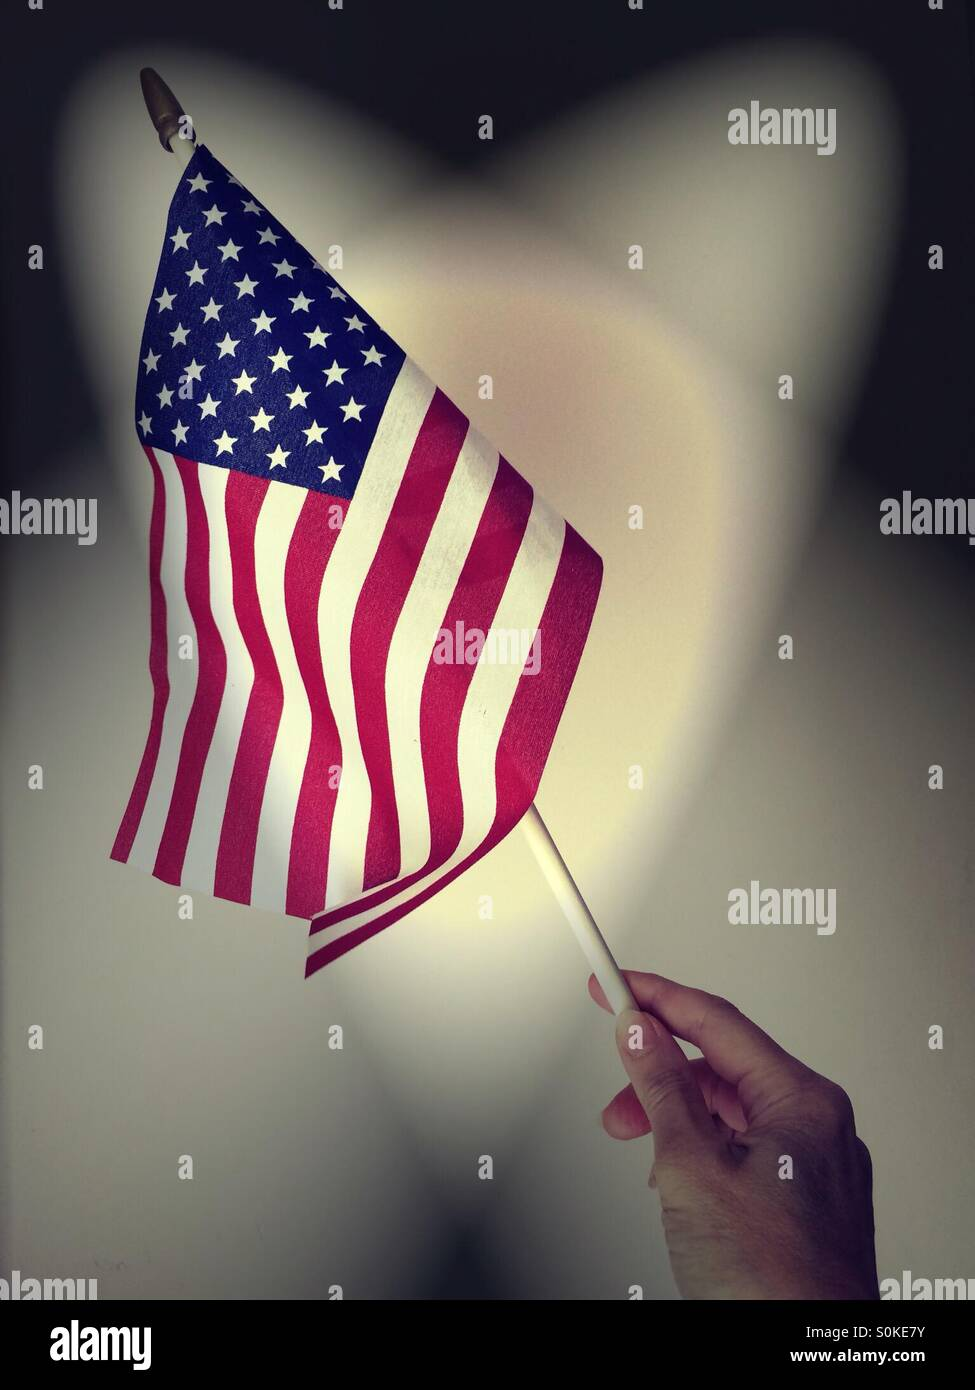 Spotlights on American Flag held by hand - Stock Image